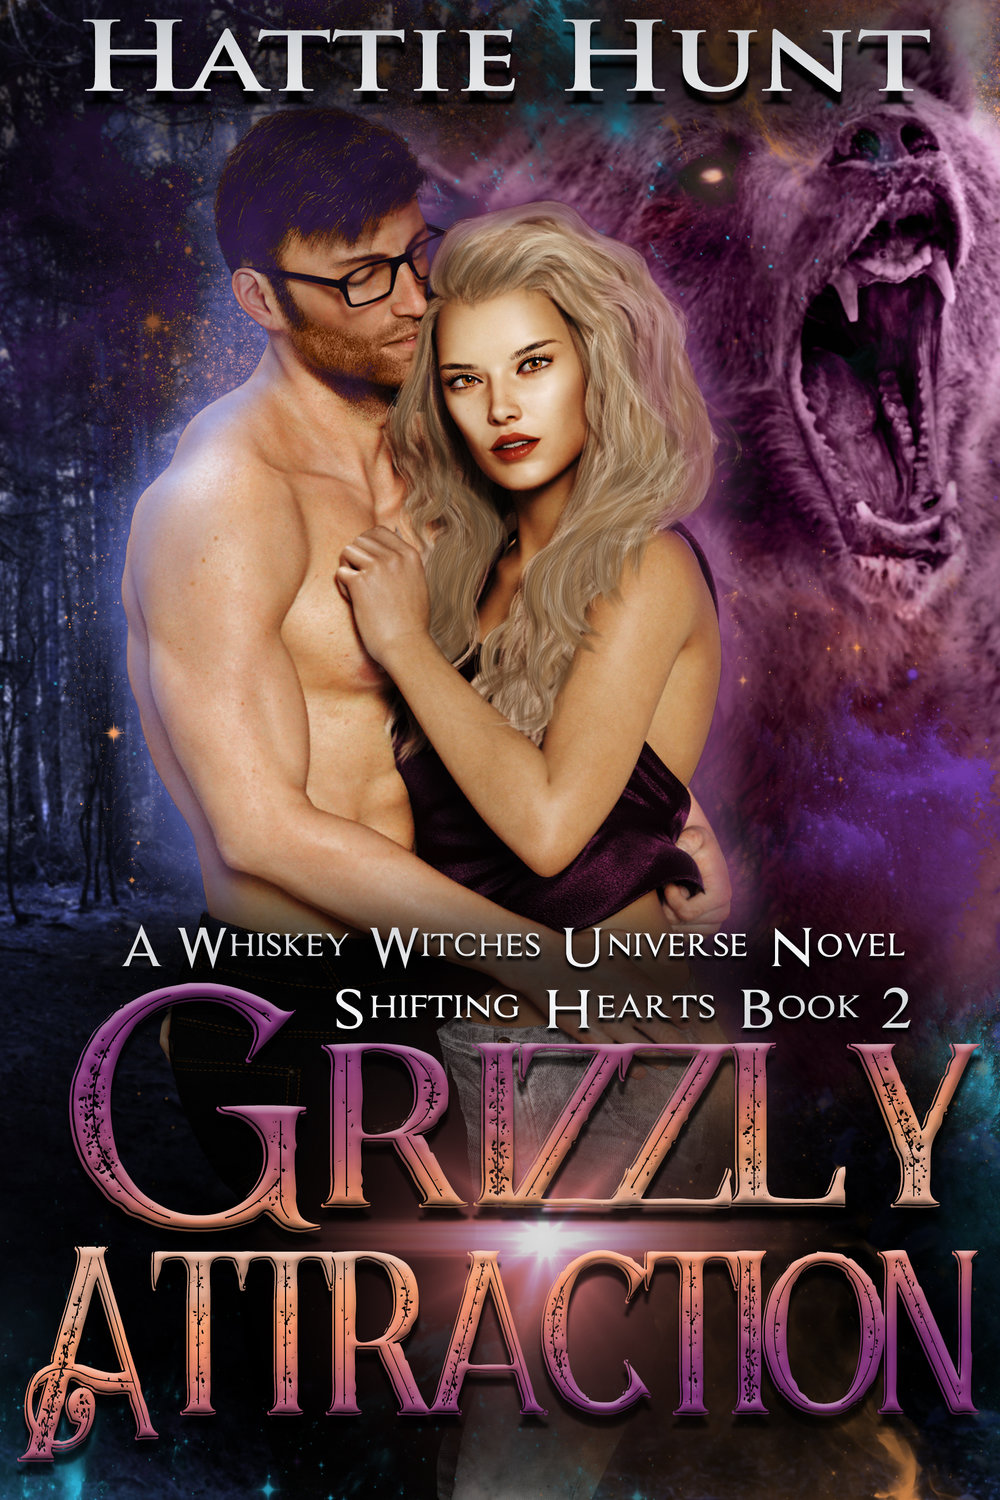 2.2018 Grizzly Attraction ebook.jpg